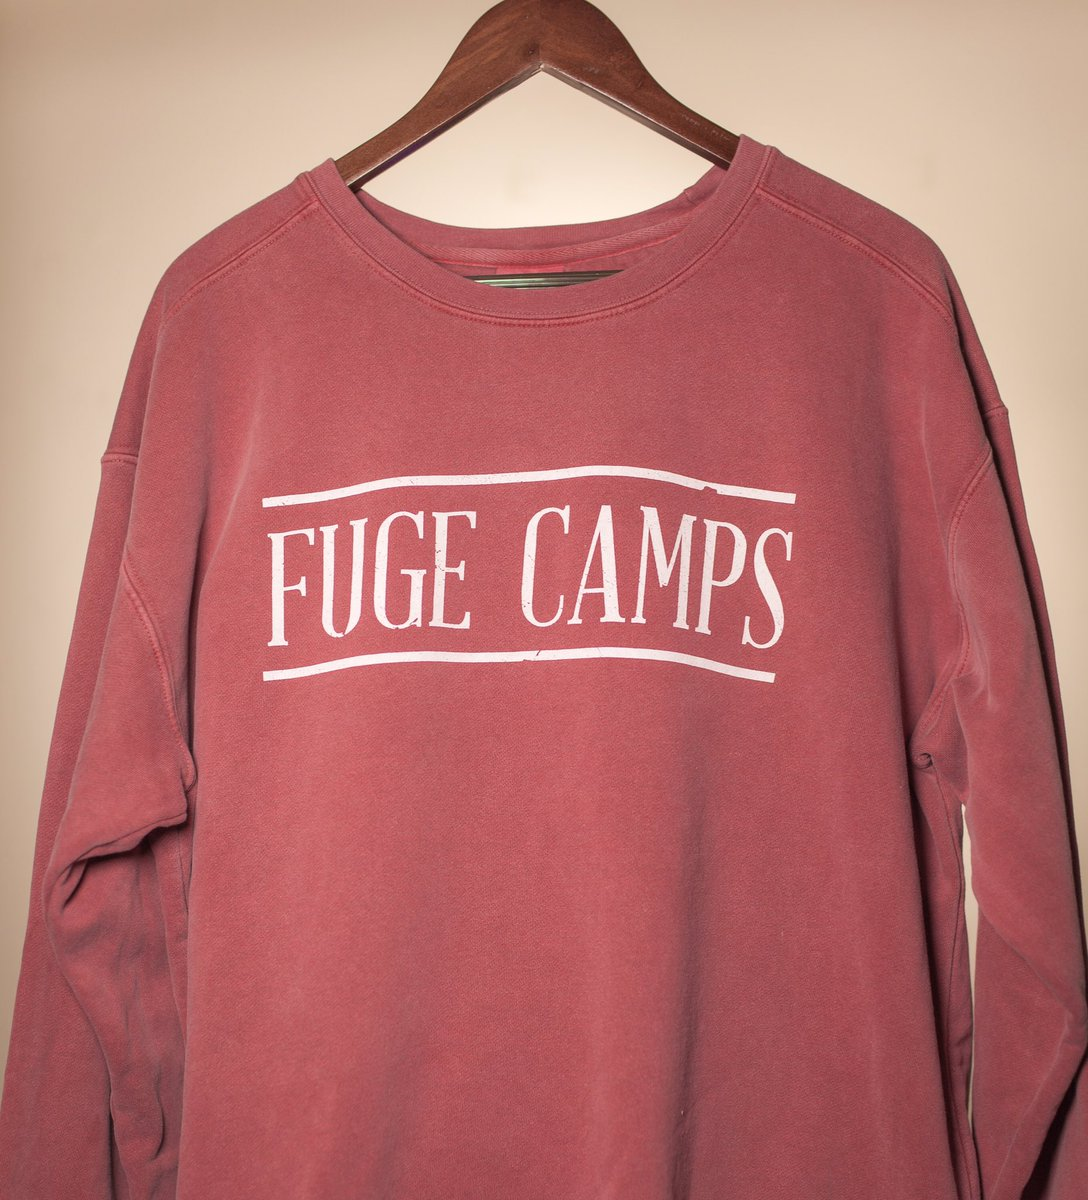 test Twitter Media - THAT SWEATSHIRT THO #fugestoresneakpeek https://t.co/oCQSKmT2Zv